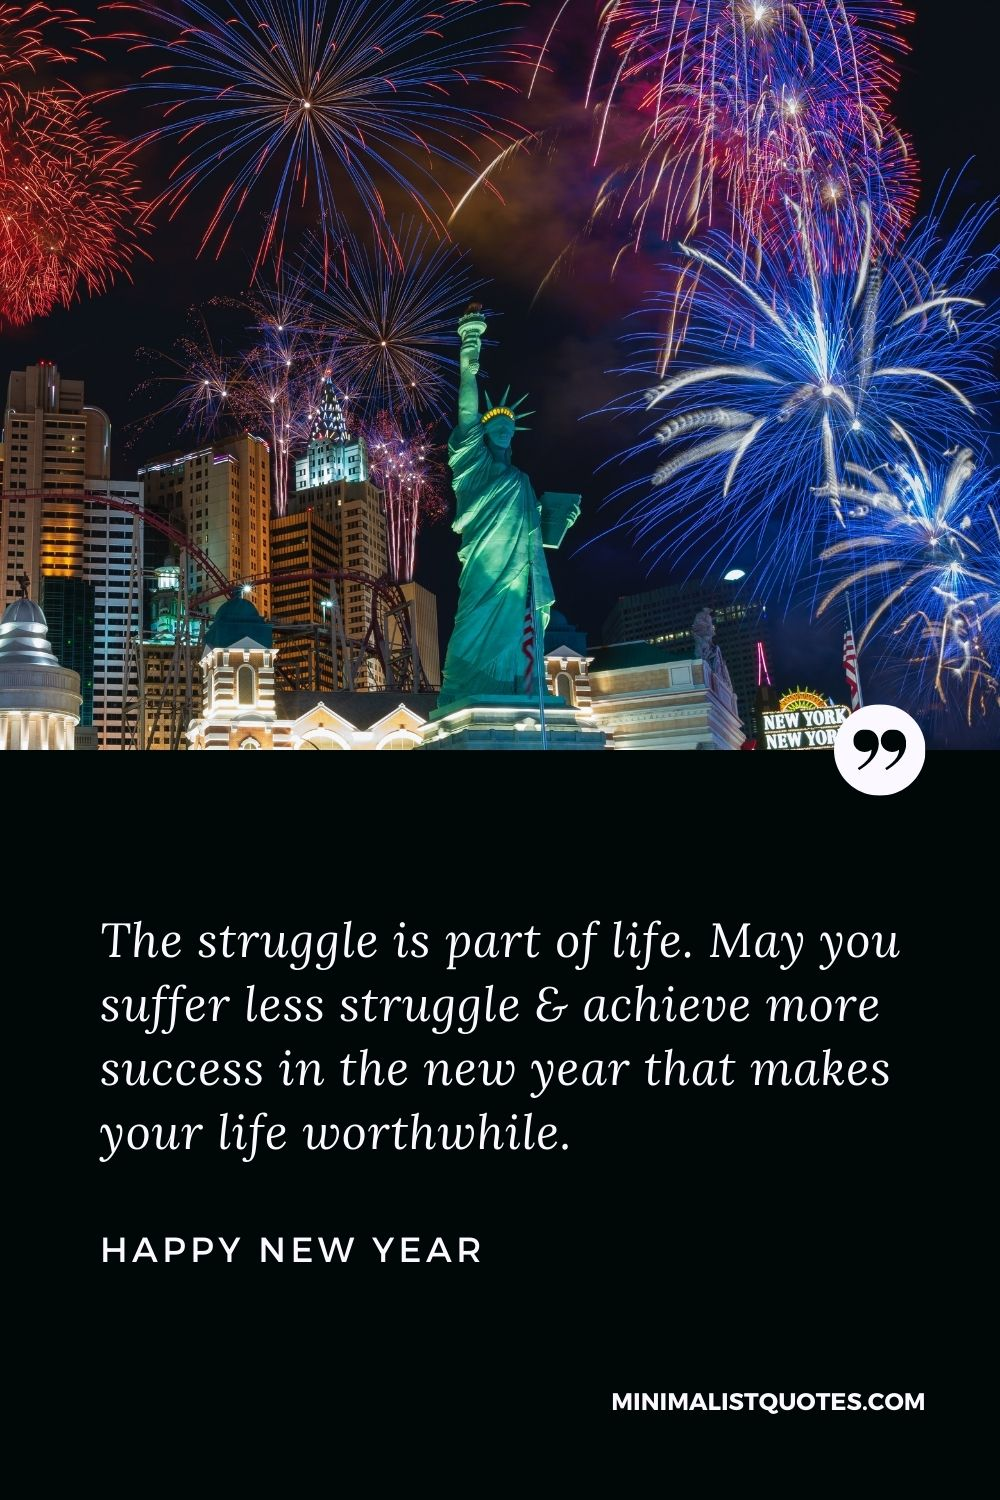 New Year Wish - The struggle is part of life. May you suffer less struggle & achieve more success in the new year that makes your life worthwhile.